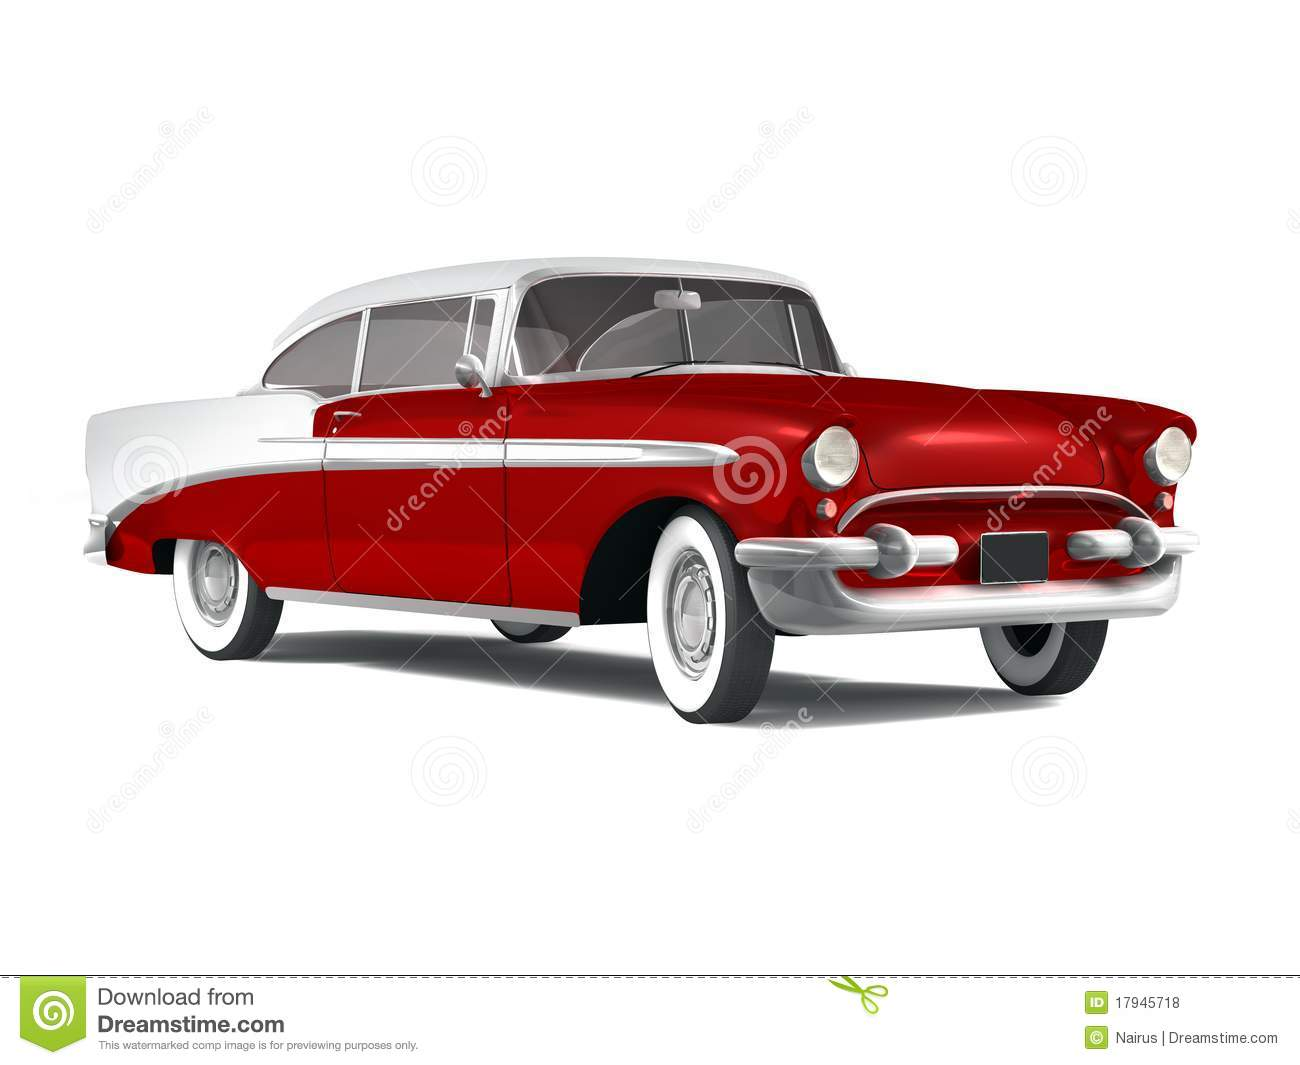 Red classic car clipart images for American classic automotive